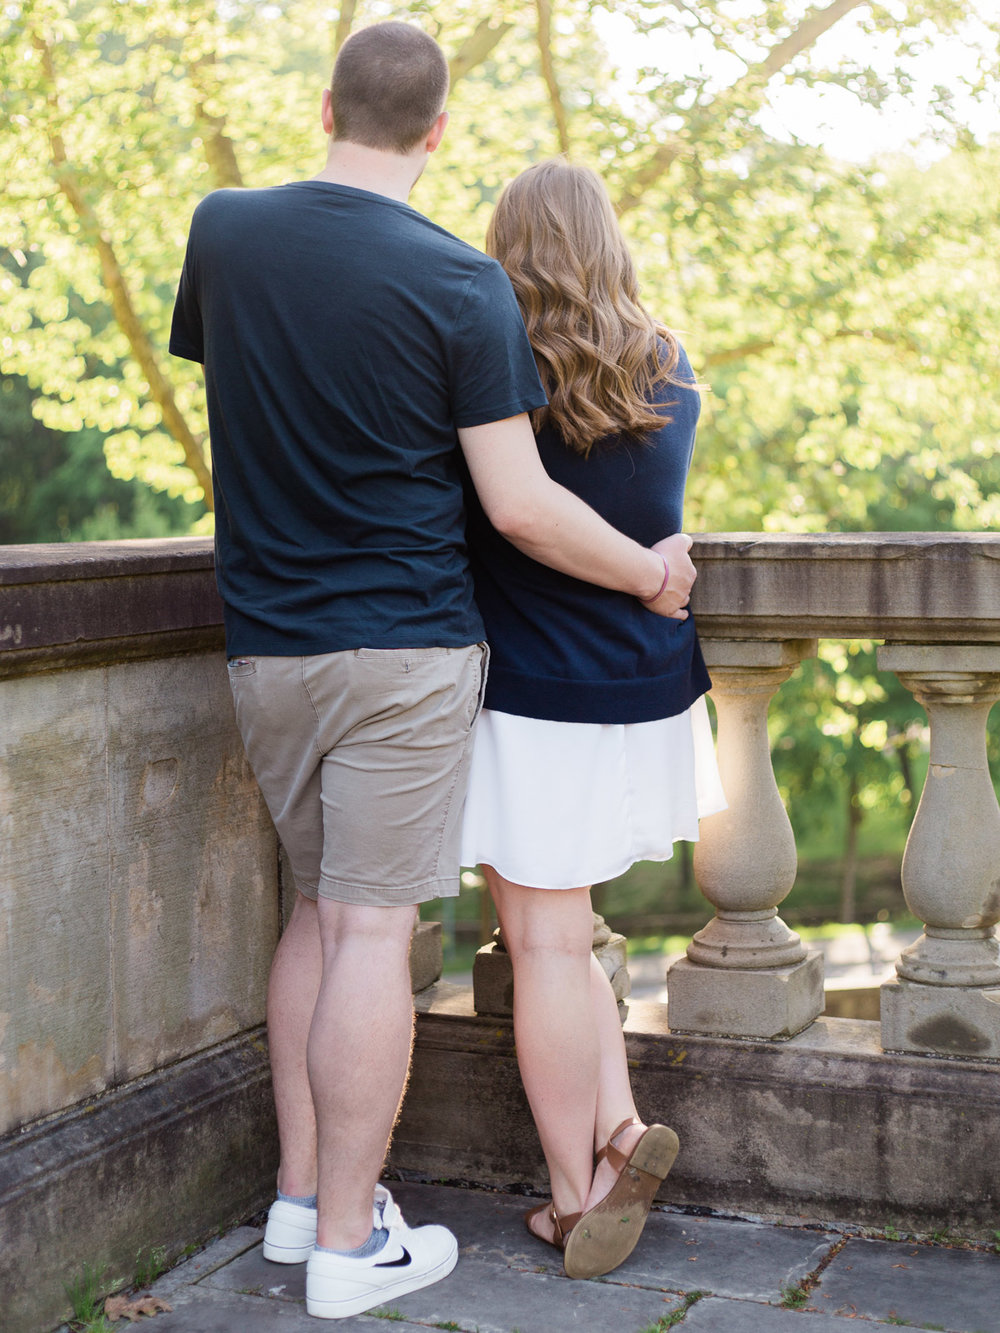 matt-erickson-photography-cleveland-cultural-gardens-engagement-photos-21.jpg